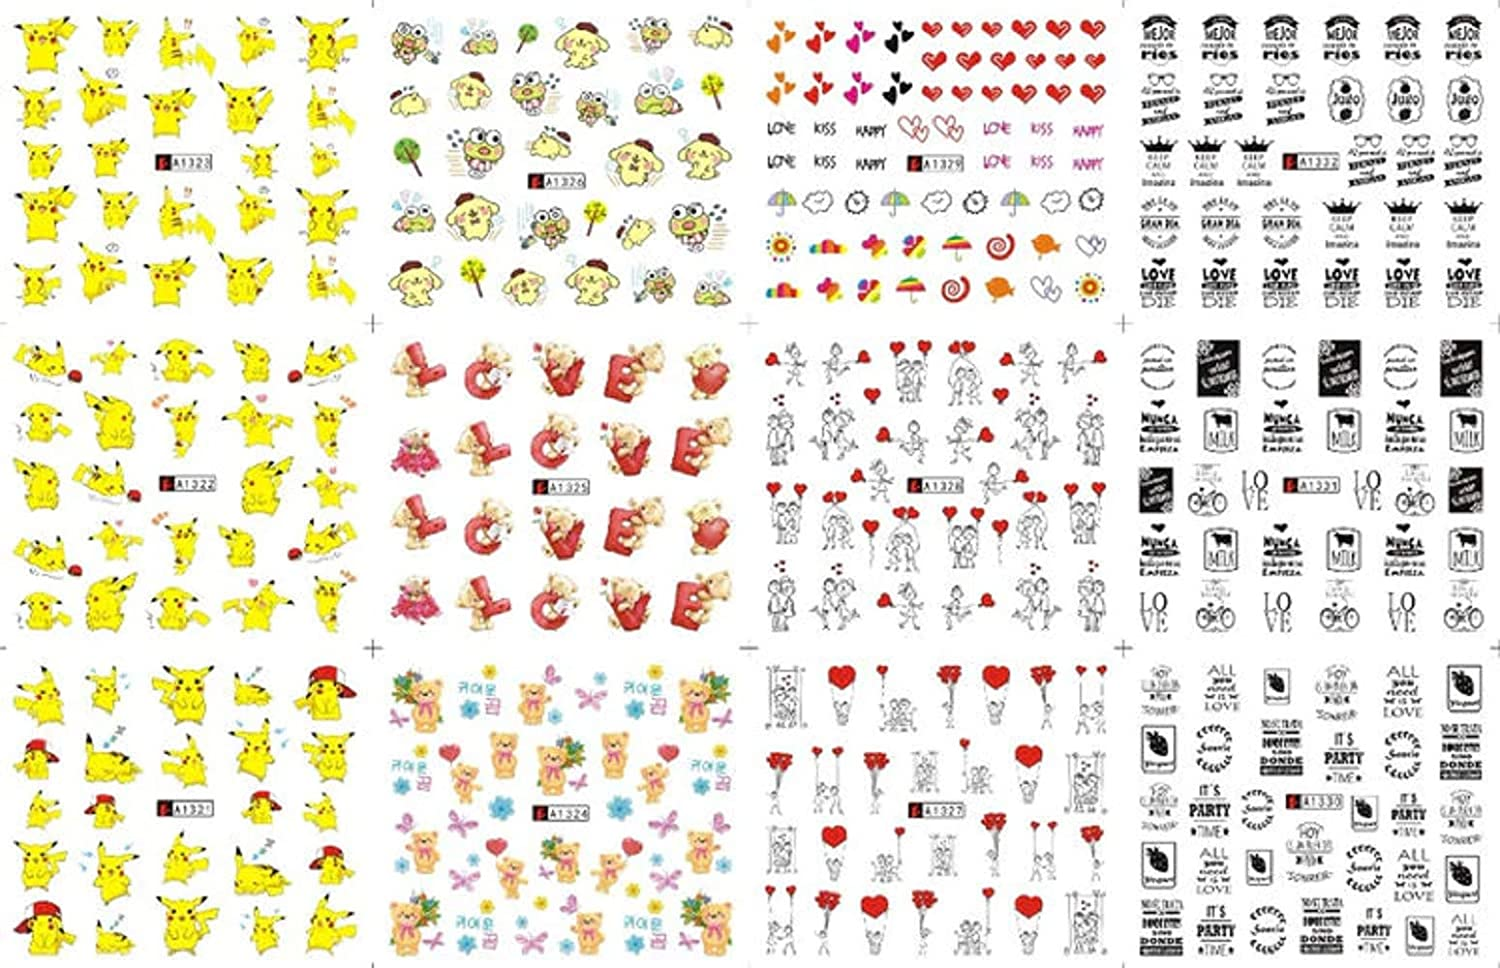 12 Sheets Water Decal Nail Art Decorations Nail Sticker Tattoo Full Cover Beauty Cartoon Mouse Decals Manicure Supplies 2020 New (A1321-1332)